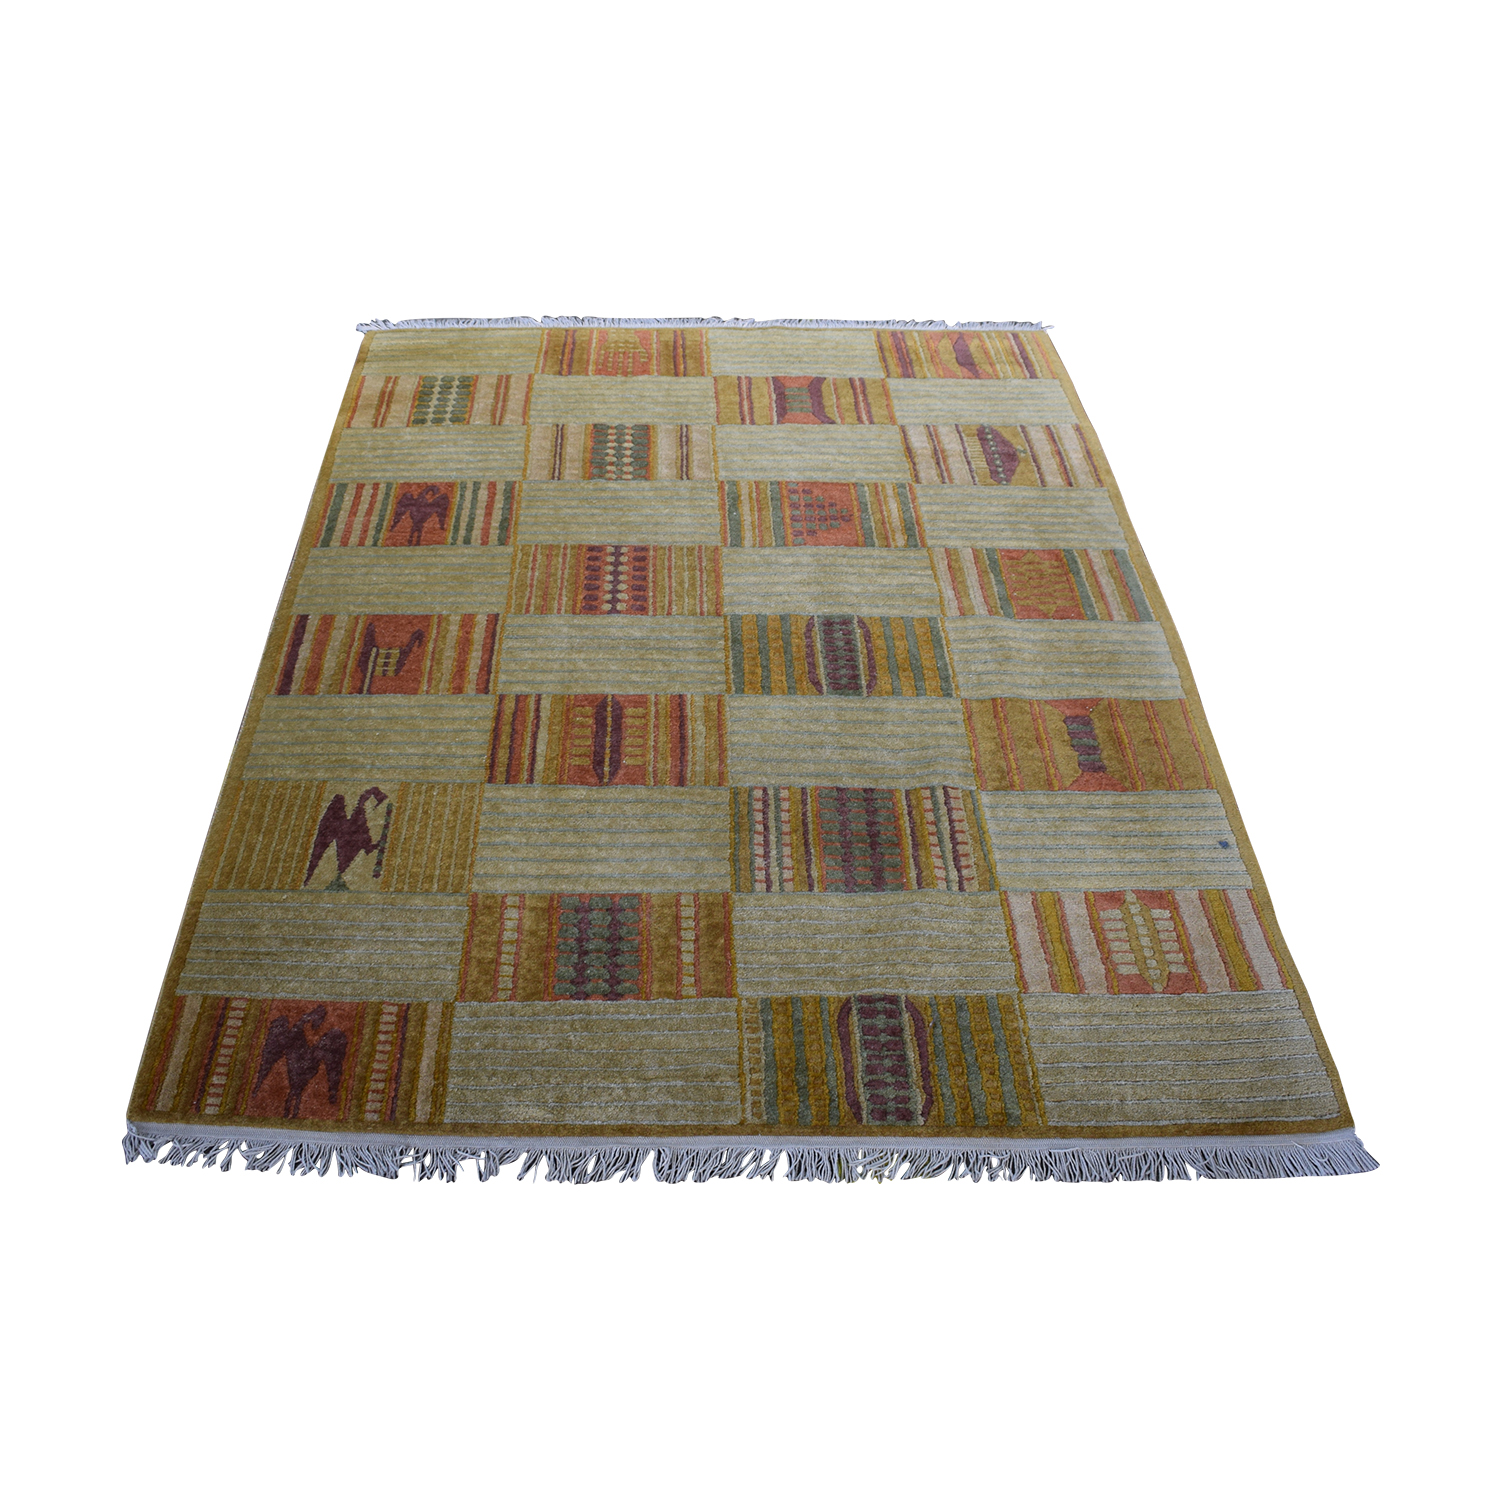 shop ABC Carpet & Home Hand-Knotted Wool Rug ABC Carpet & Home Decor